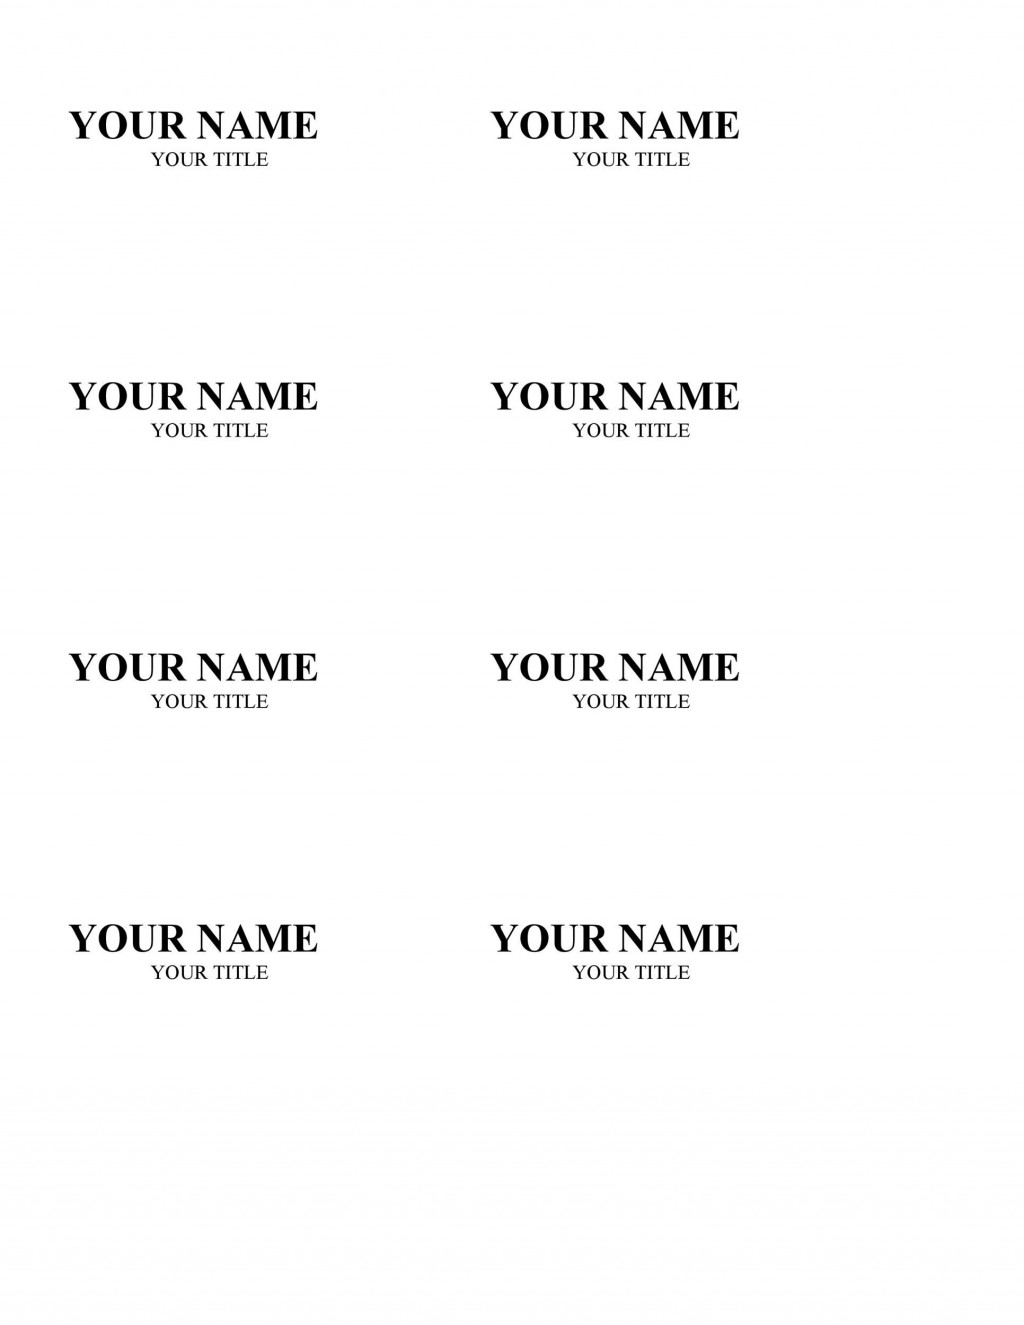 010 Unforgettable Name Badge Template Word Concept  Free Download 2010 Avery 5392Large